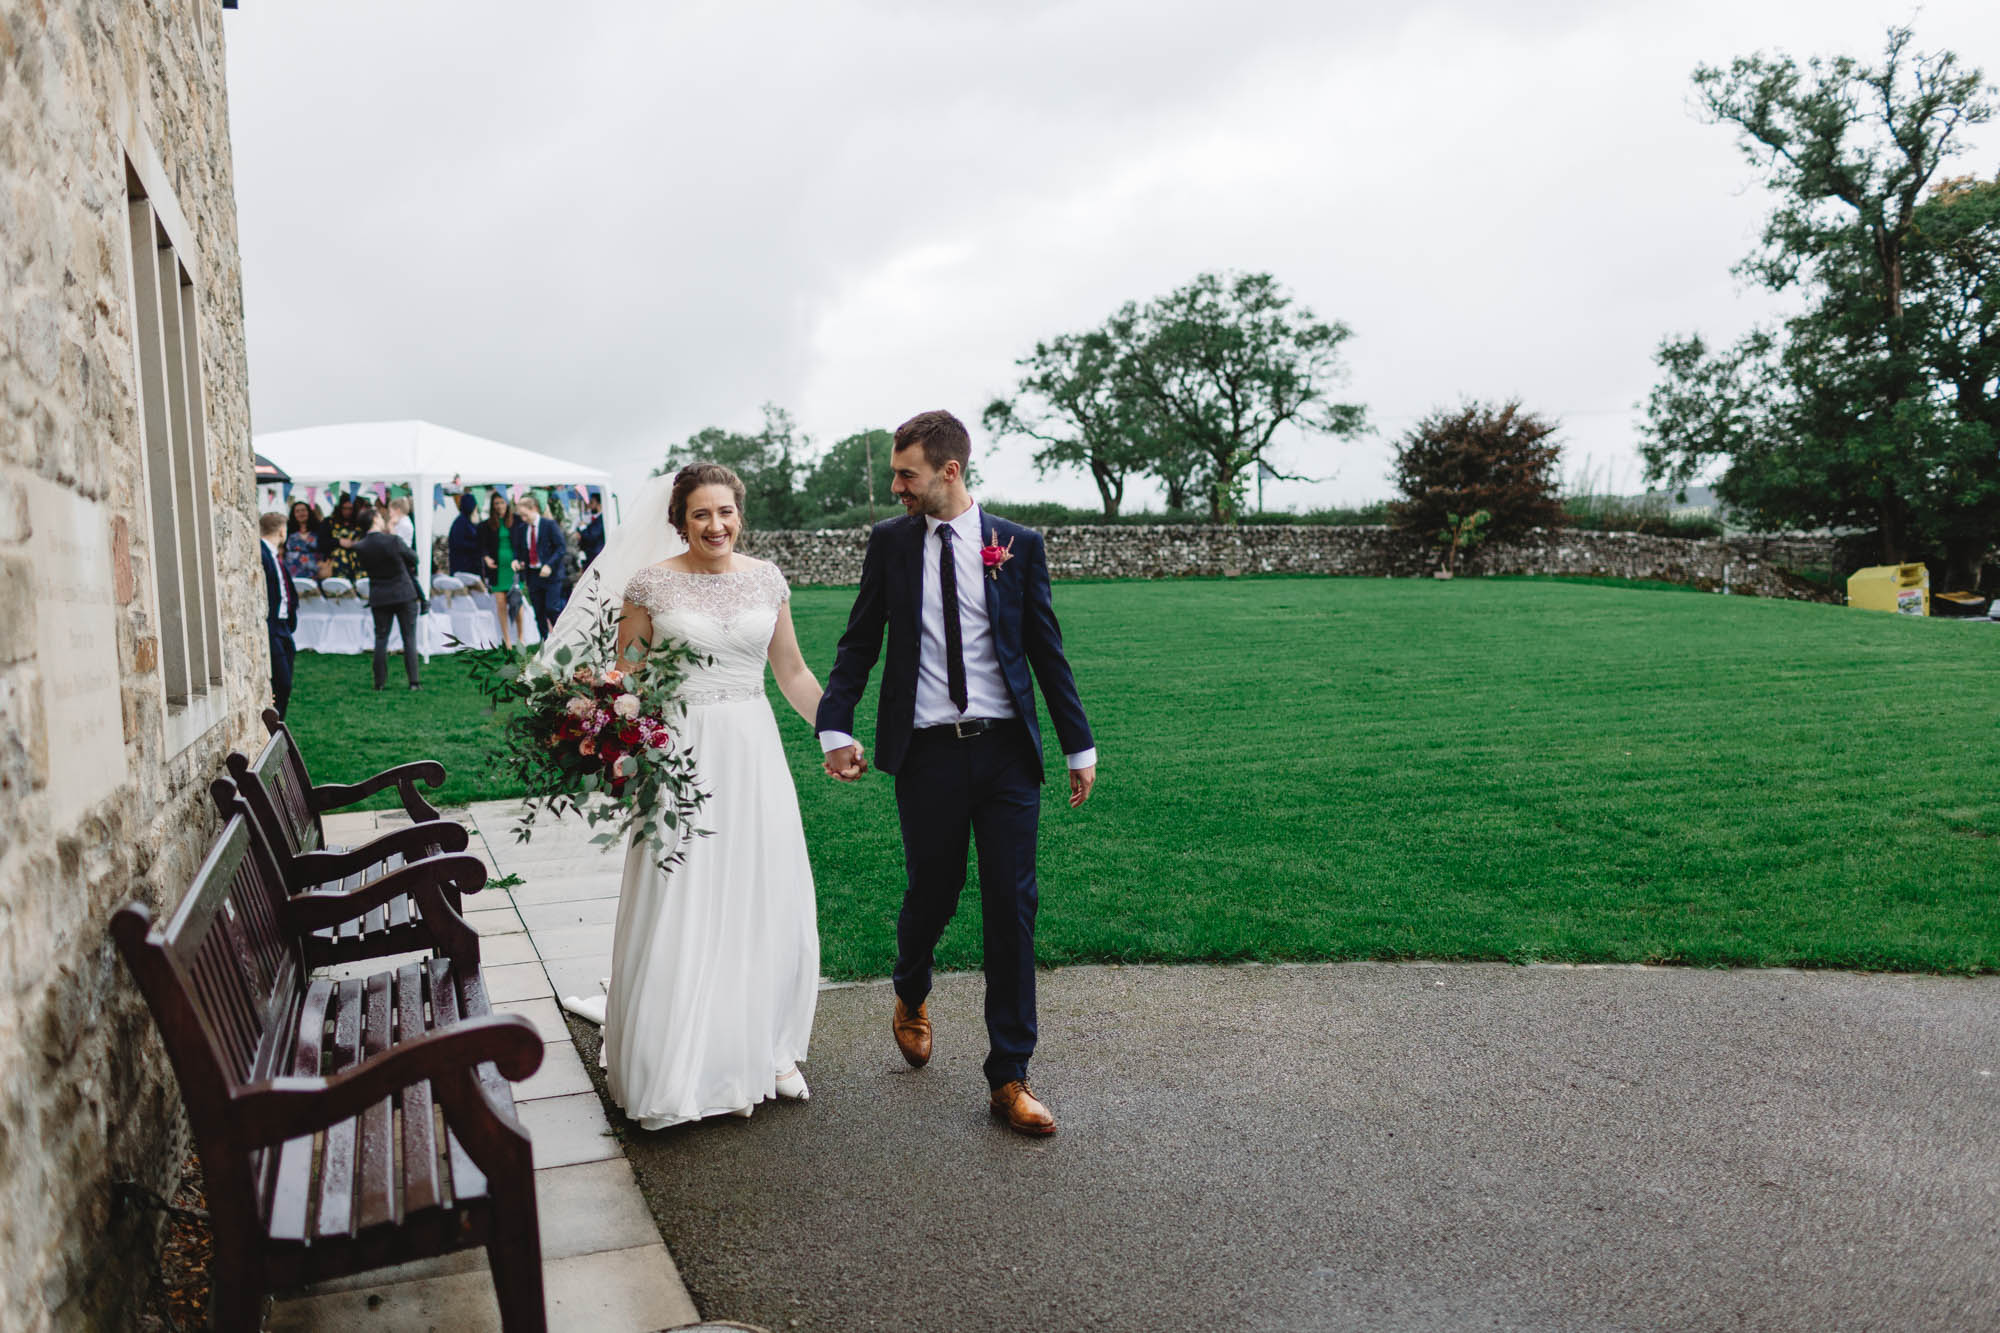 Photography from a North Yorkshire Wedding, Leeds, romantic, outdoor ceremony, DIY wedding, candid, relaxed fun photographer Huddersfield, newly married